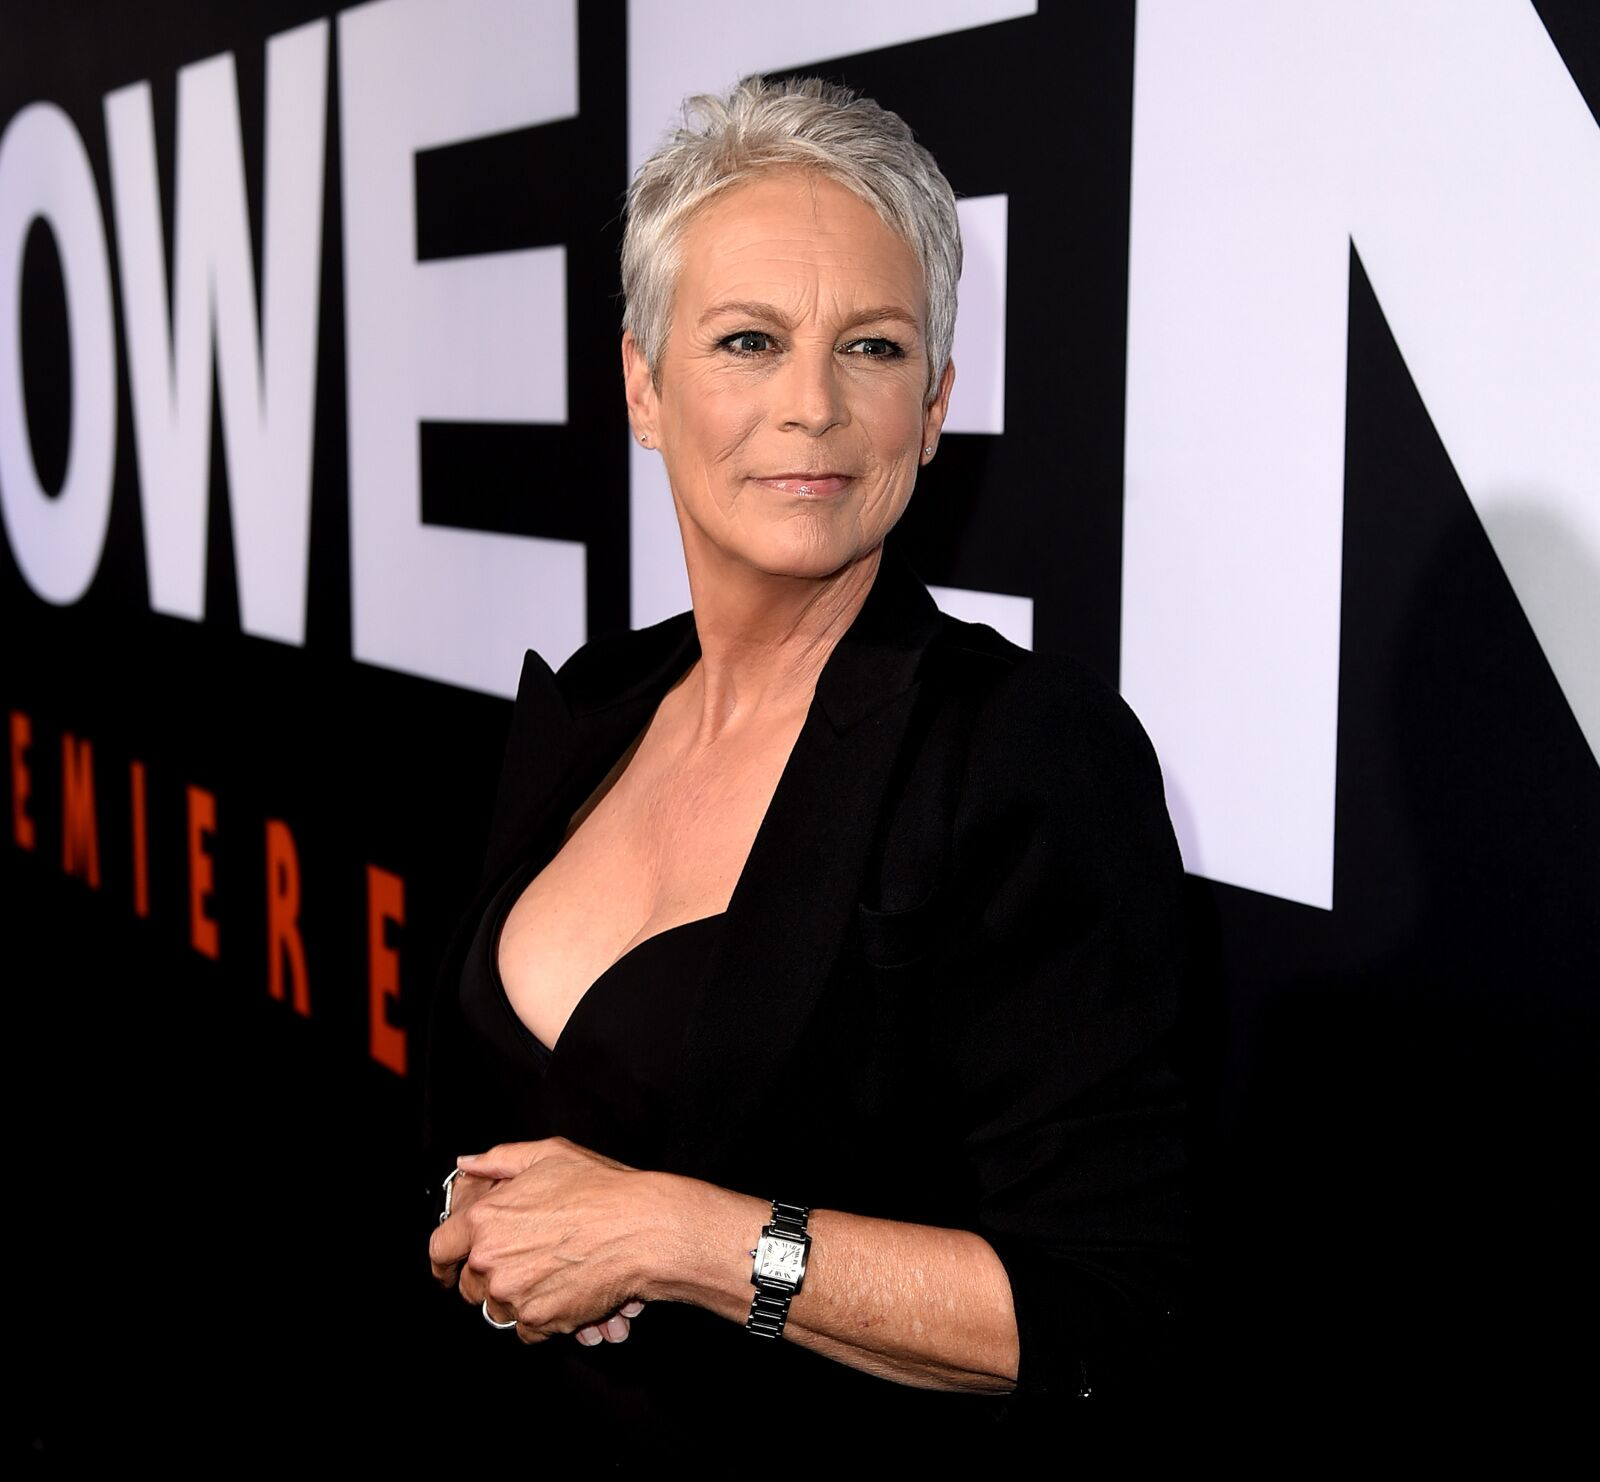 Jamie Lee Curtis will receive Lifetime Achievement Award from ICG